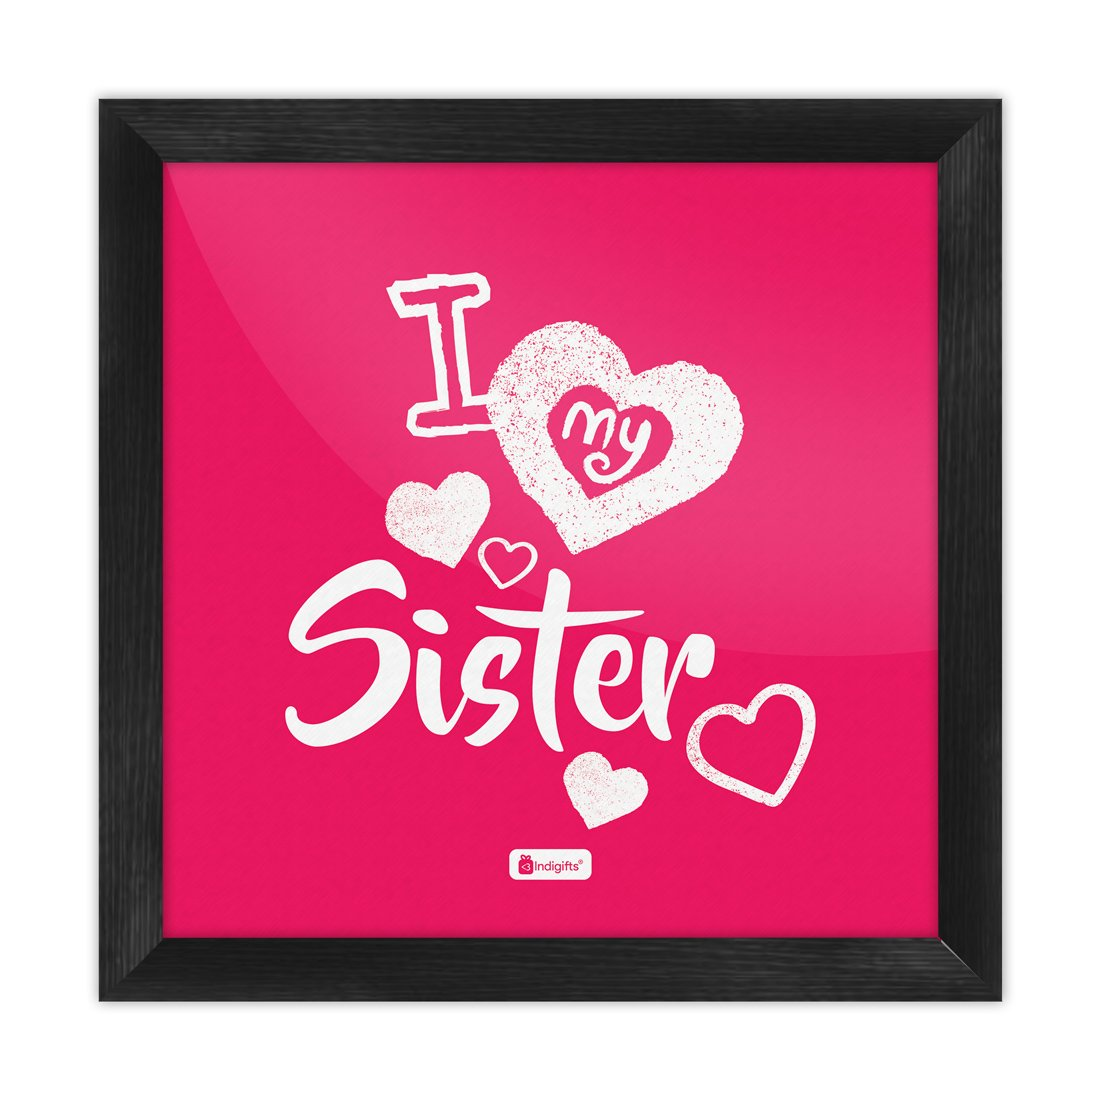 Buy Indigifts Rakhi Gifts For Sister I Love My Dear Sis Quote Printed Pink Poster Frame 8x8 Inch Raksha Bandhan Gifts For Sister Sister Birthday Gift Rakshabandhan Gifts Poster With Frame